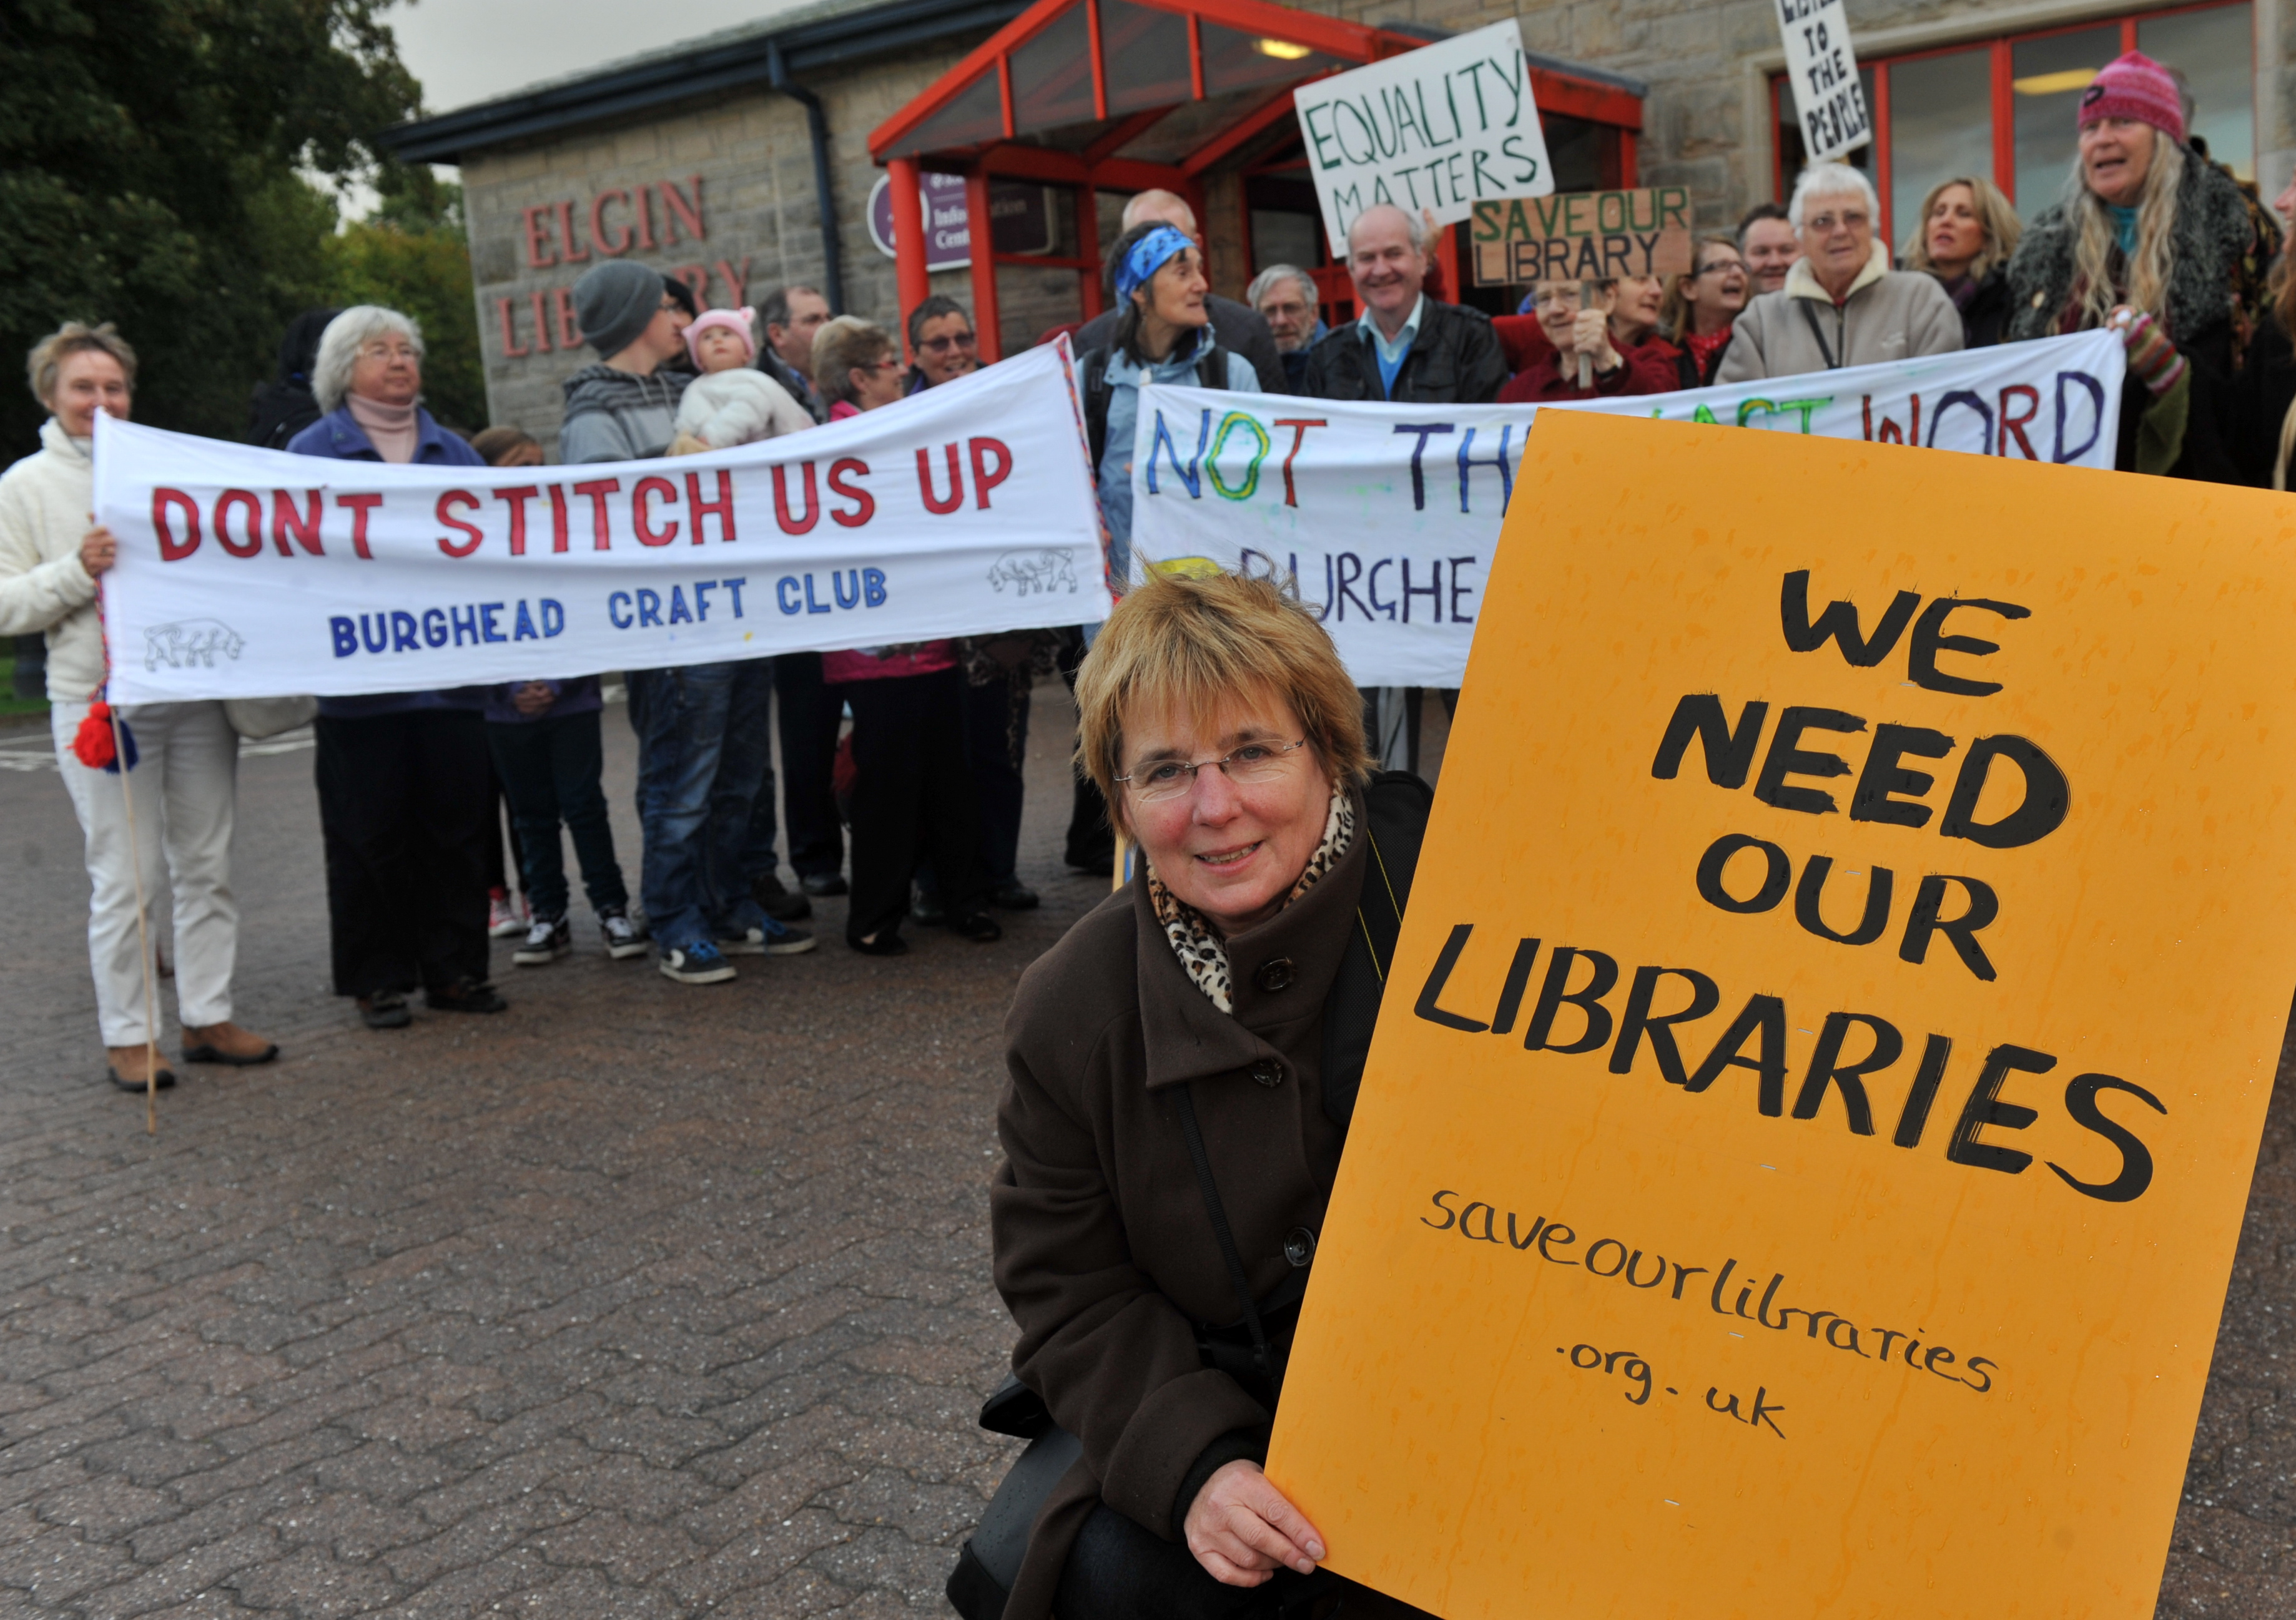 Campaigners pressed to save libraries across Moray in 2013.